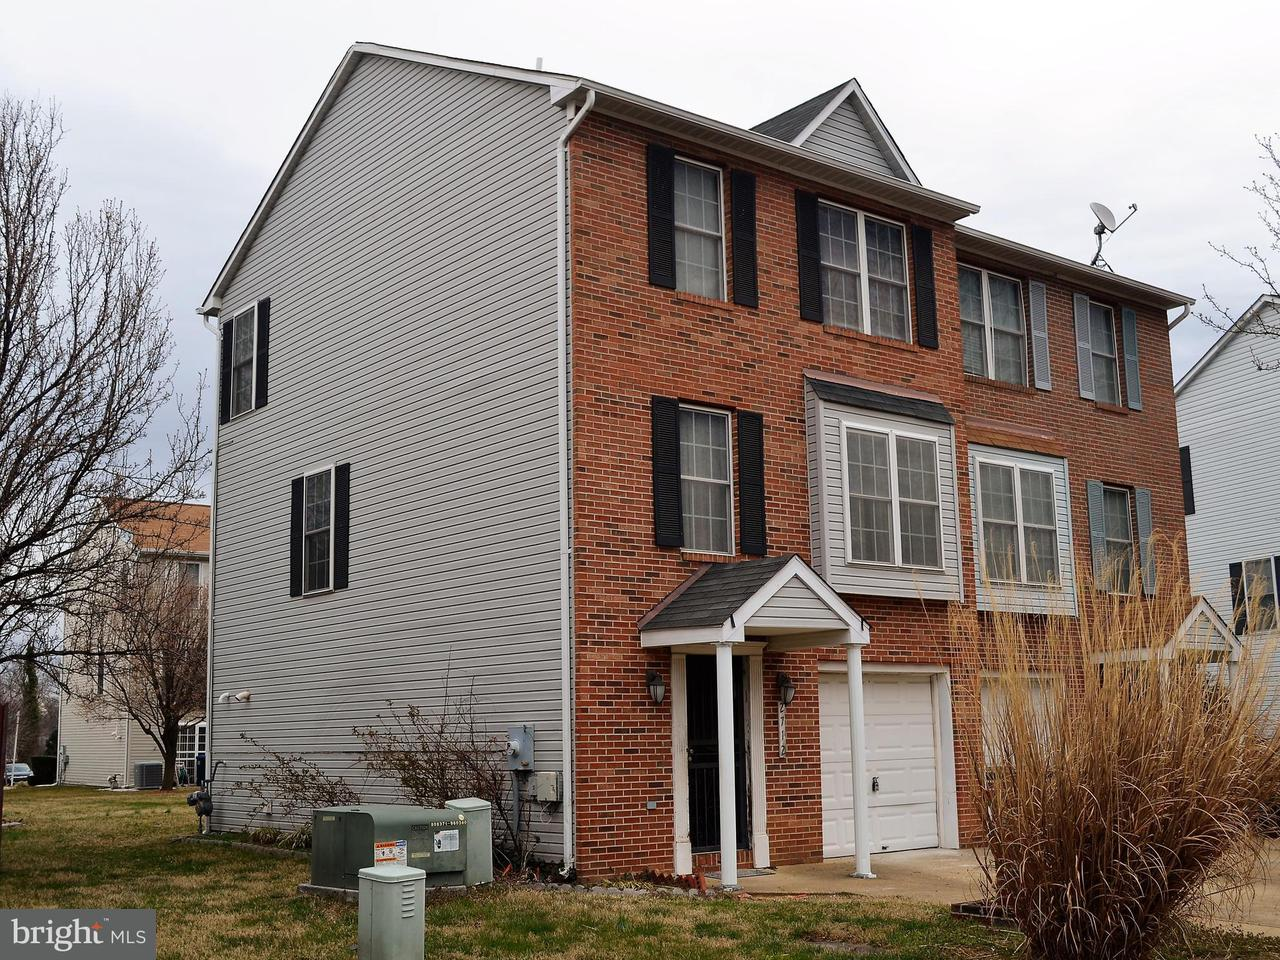 Single Family for Sale at 2712 James M Mcgee Jr St SE Washington, District Of Columbia 20020 United States